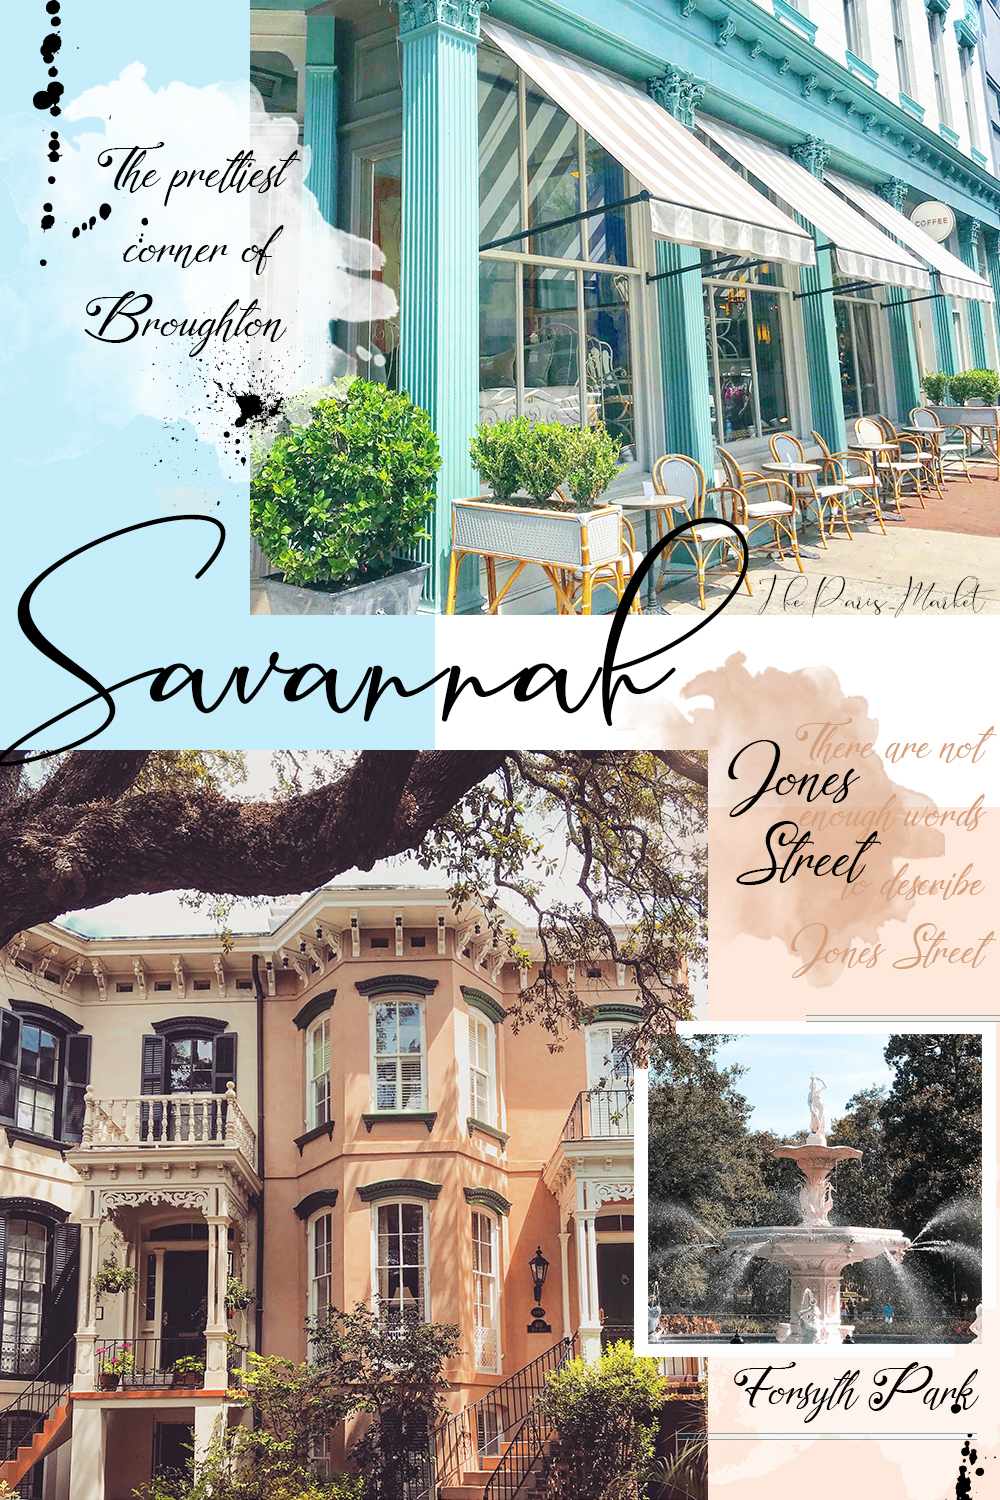 Making the most of a day trip to Savannah